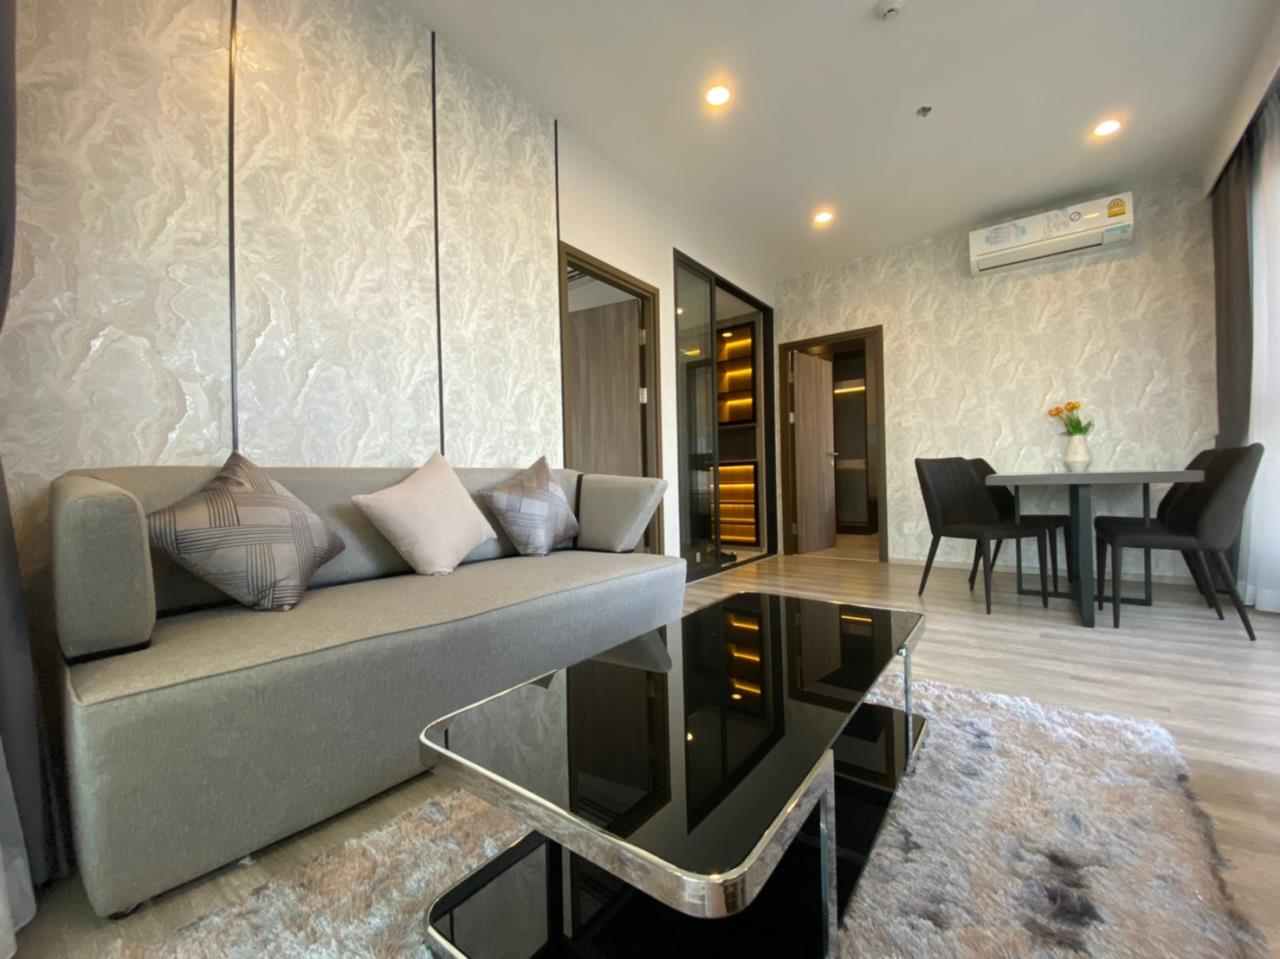 Su Agent Co.,Ltd Agency's BS074 Ideo Mobi Asoke 55 sq.m 2 Bedroom for rent 41,000 Baht/Month 1